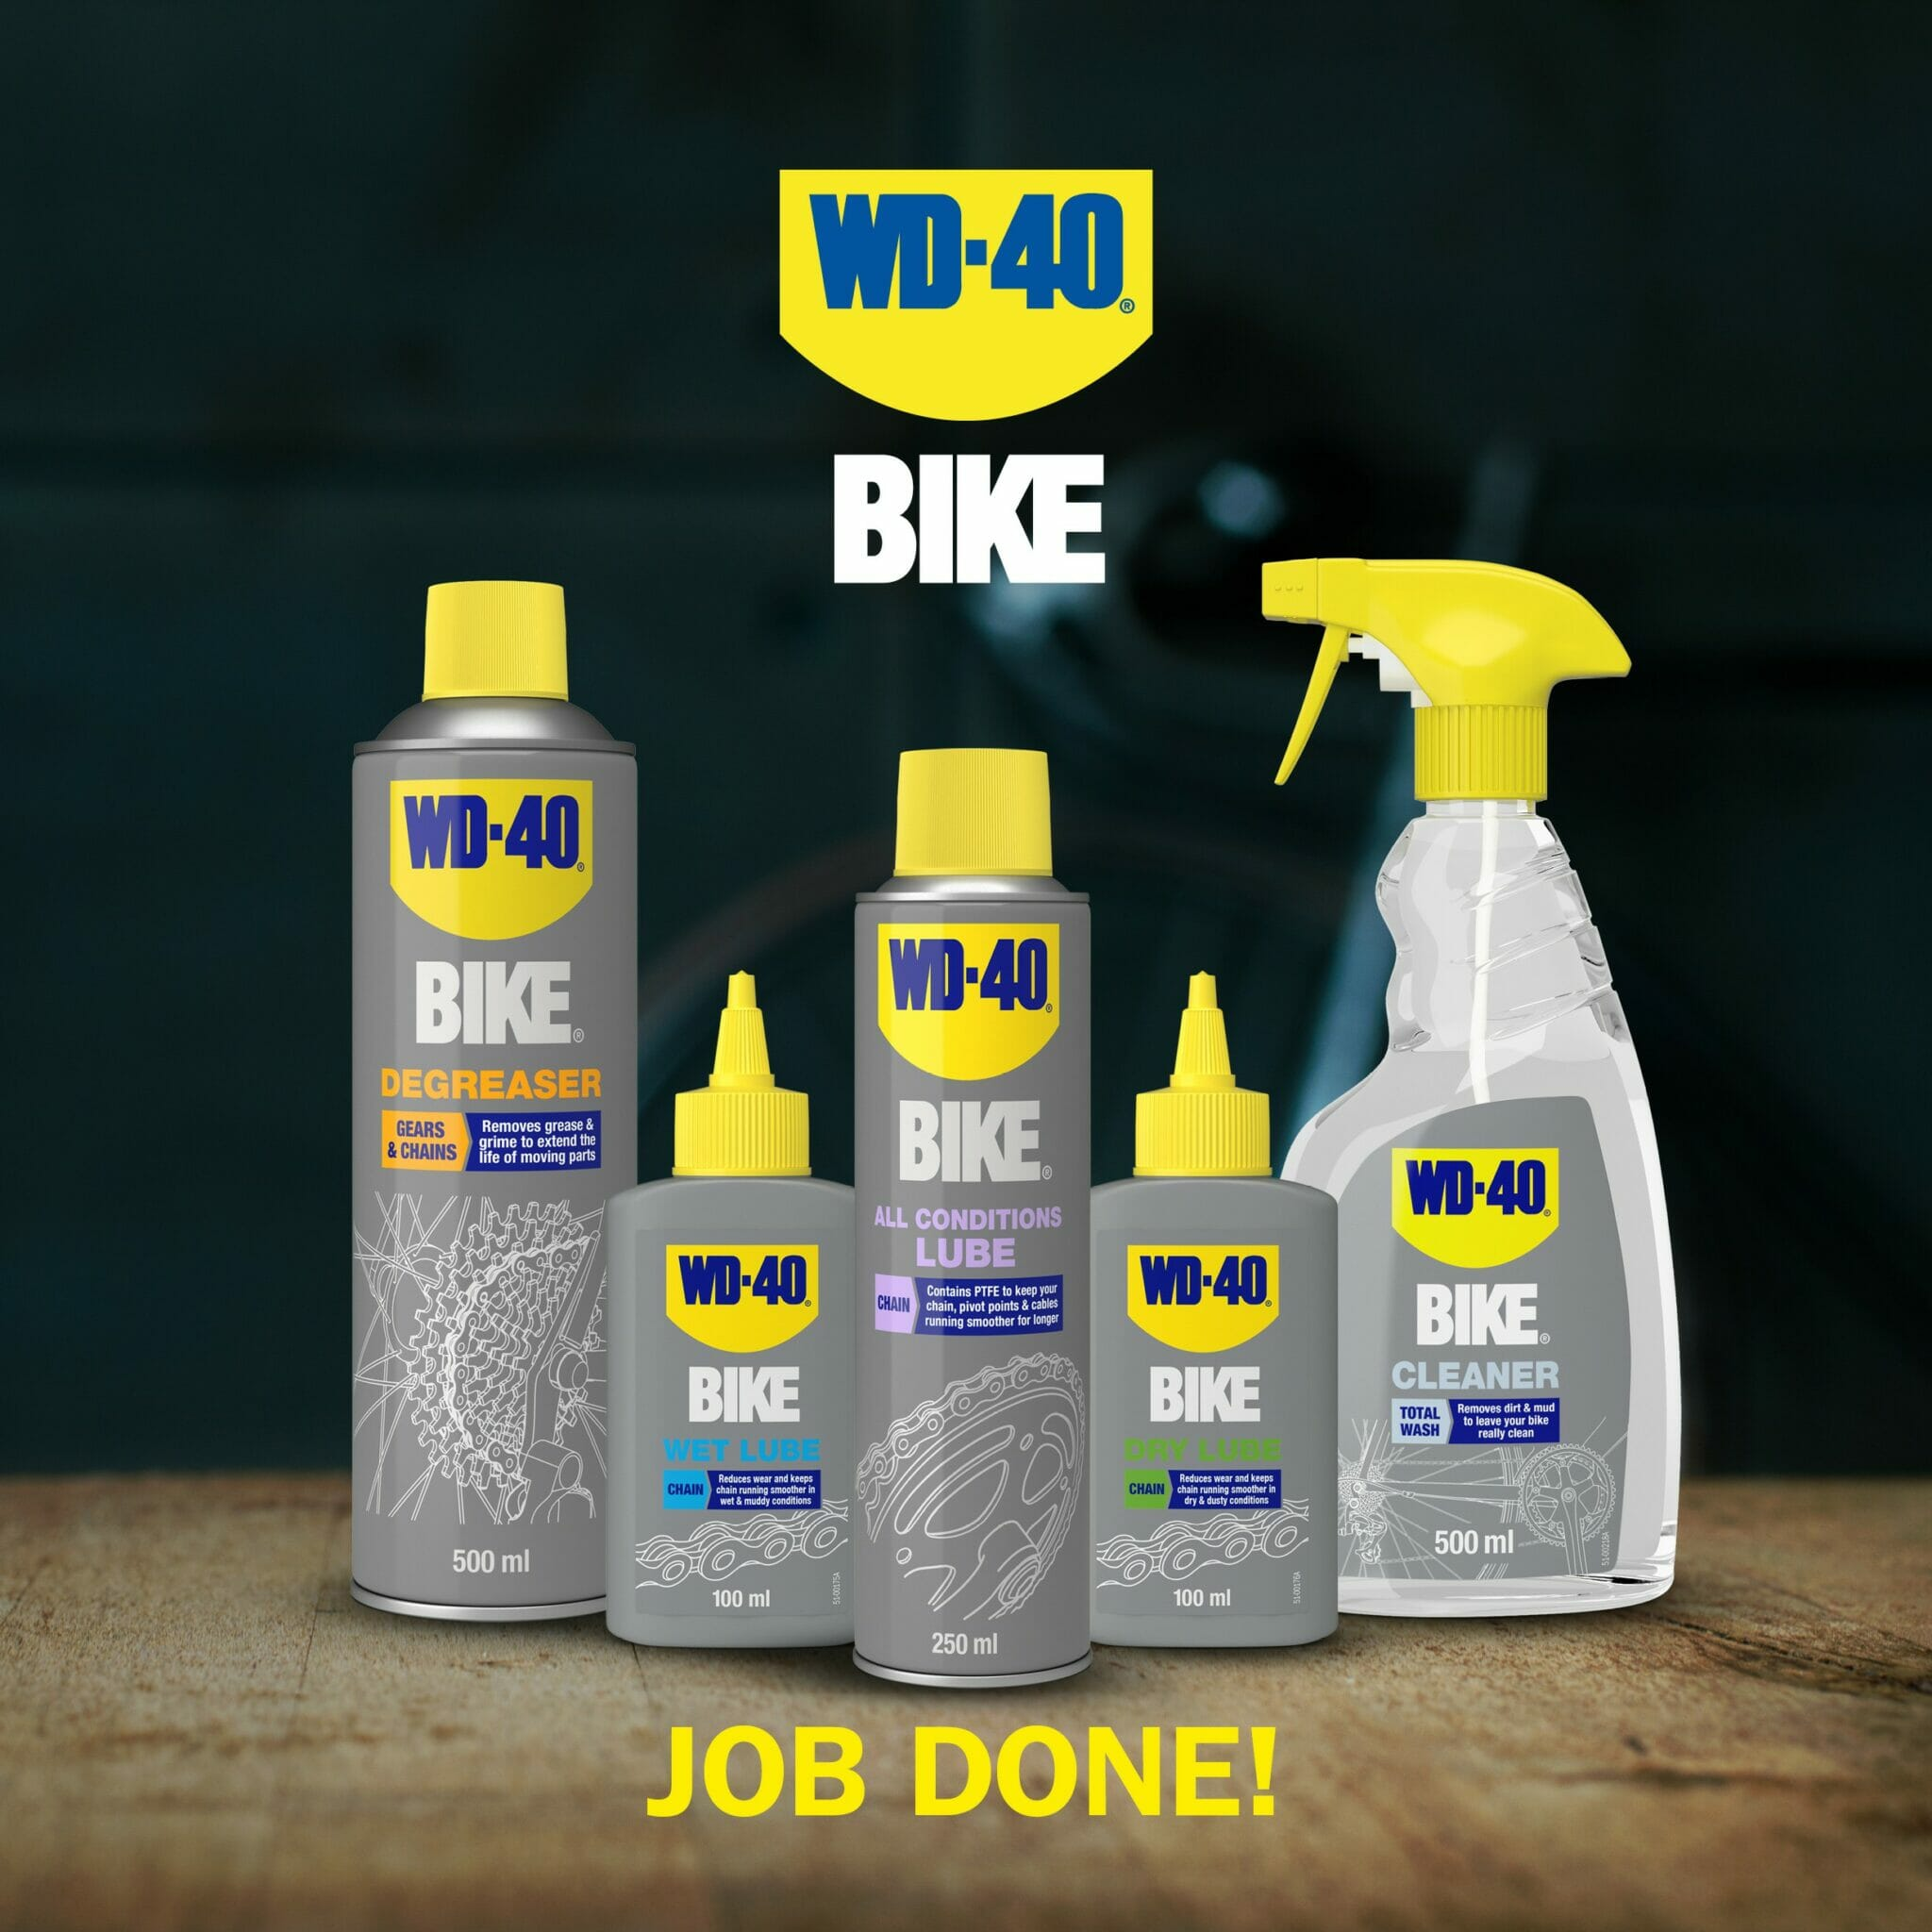 wd40 bike all conditions lube how to use part 6